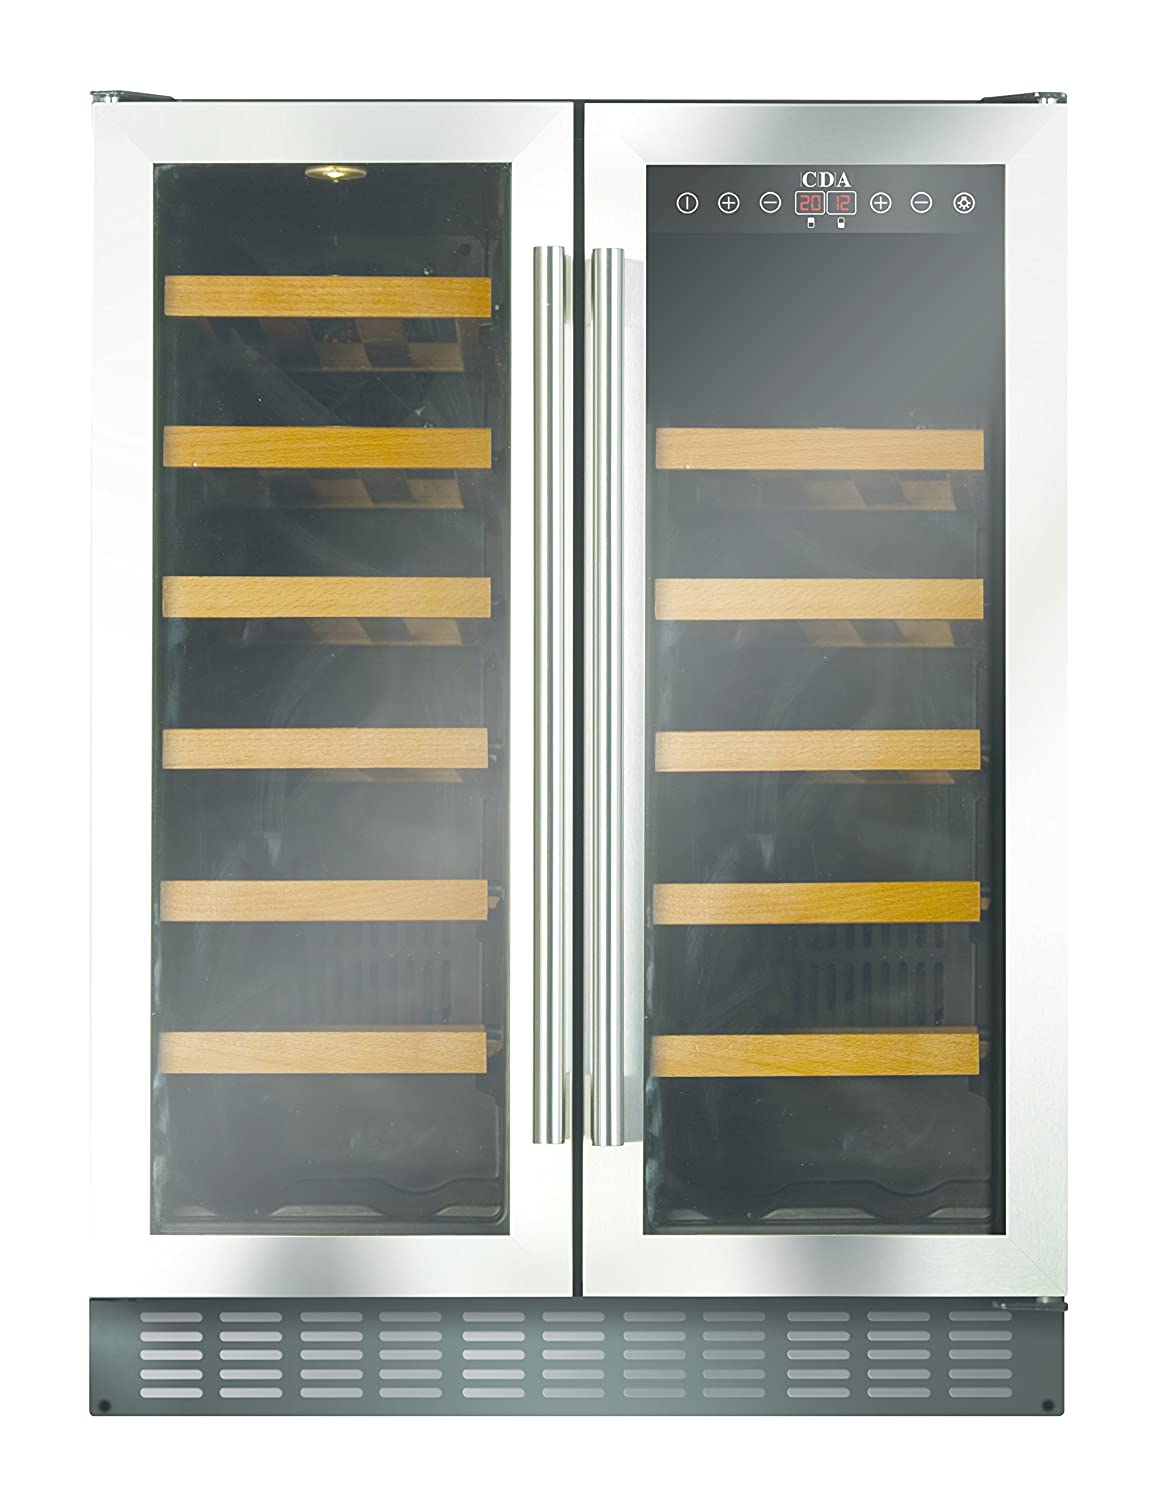 cda fwc623ss 60cm free standing under counter wine cooler in ststeel amazoncouk large appliances - Under Counter Wine Fridge